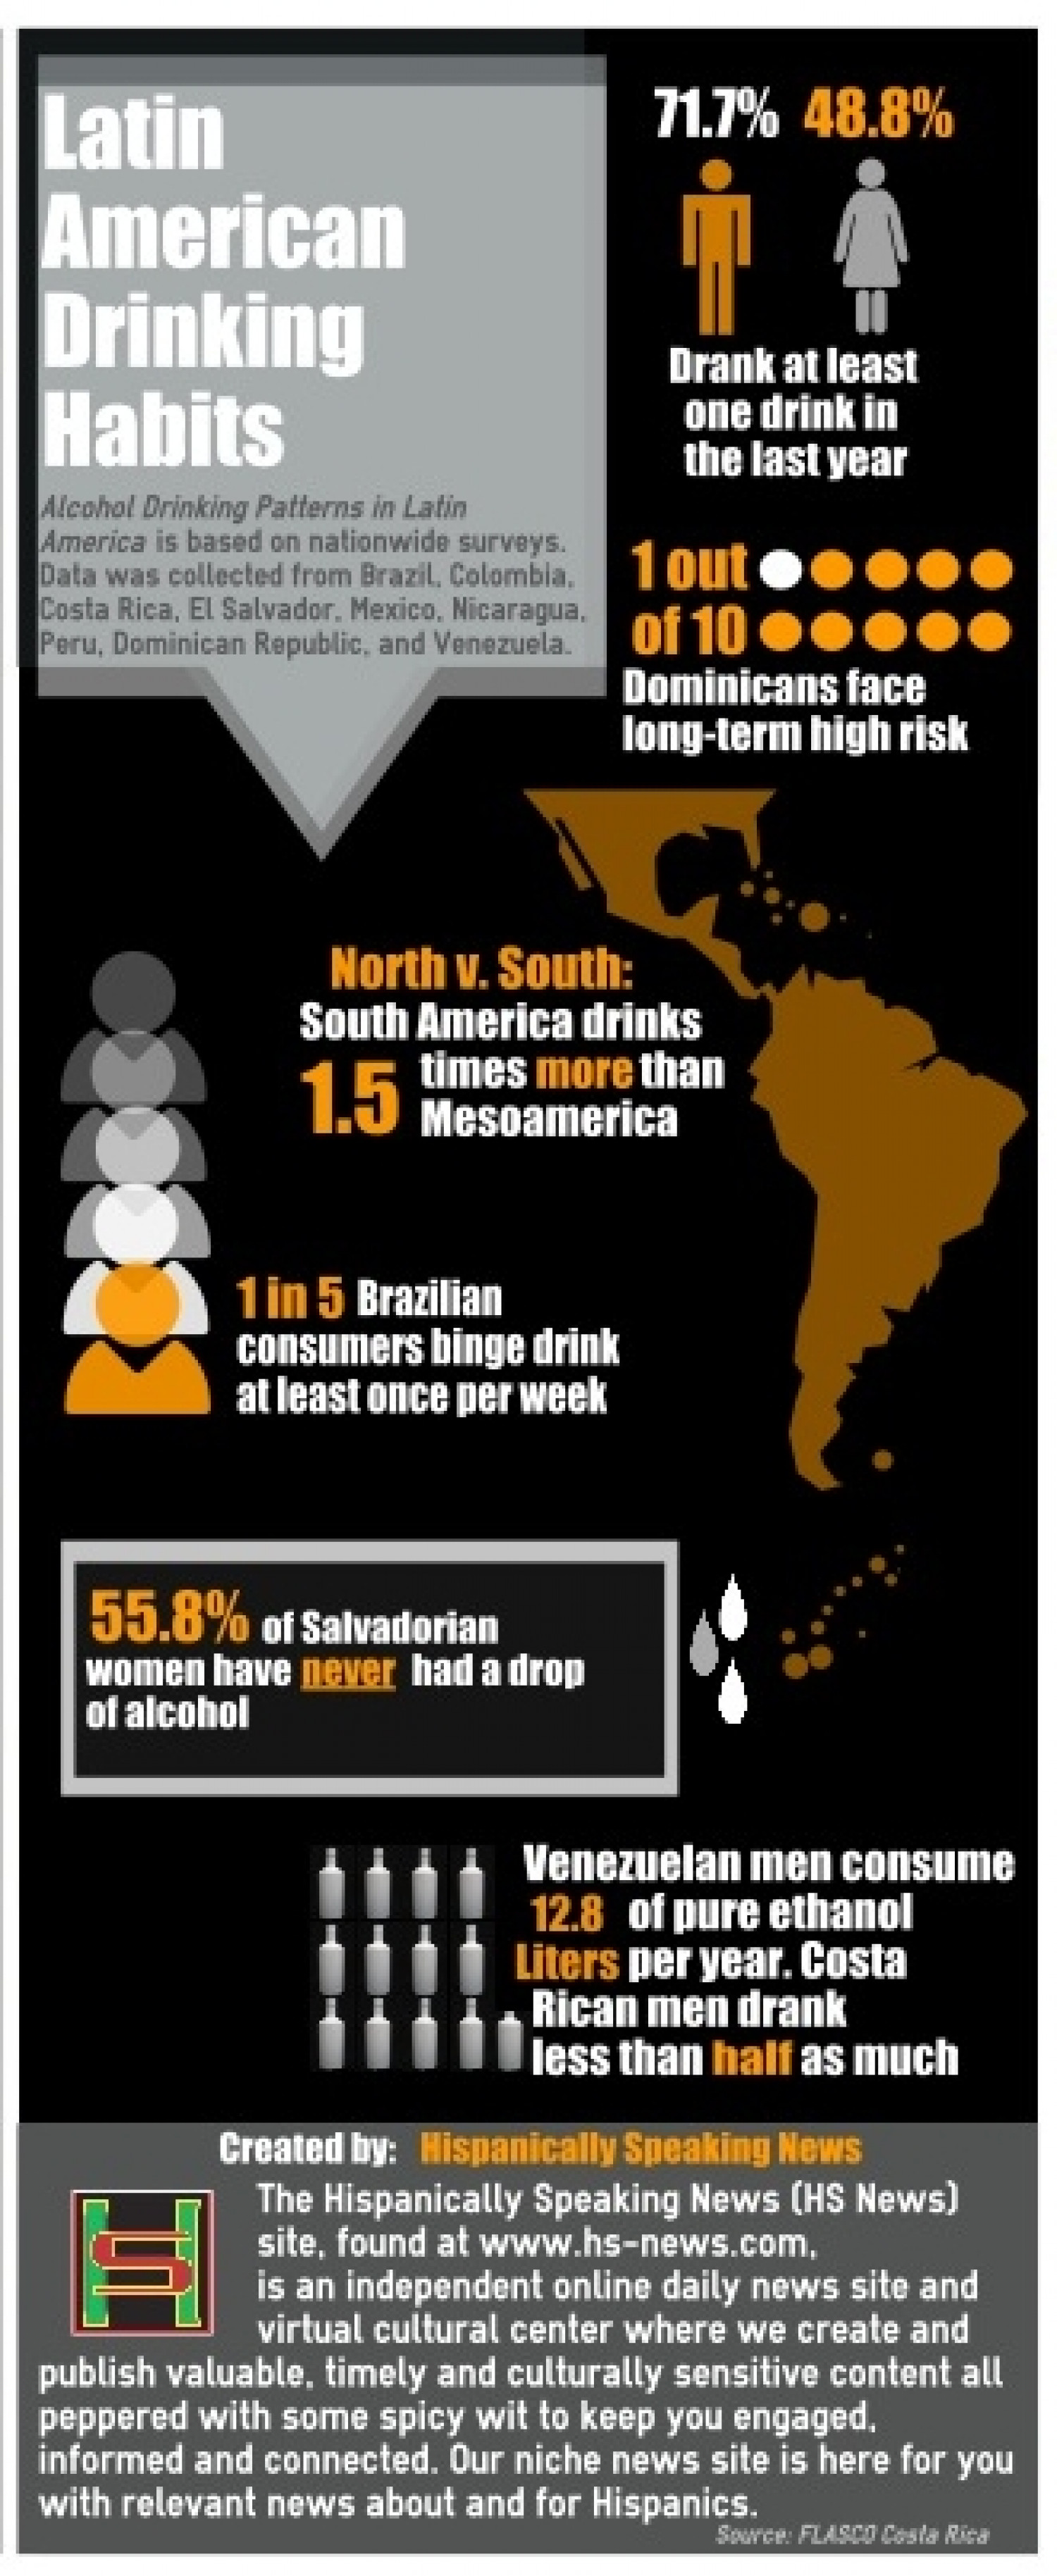 Latin American Drinking Habits Infographic